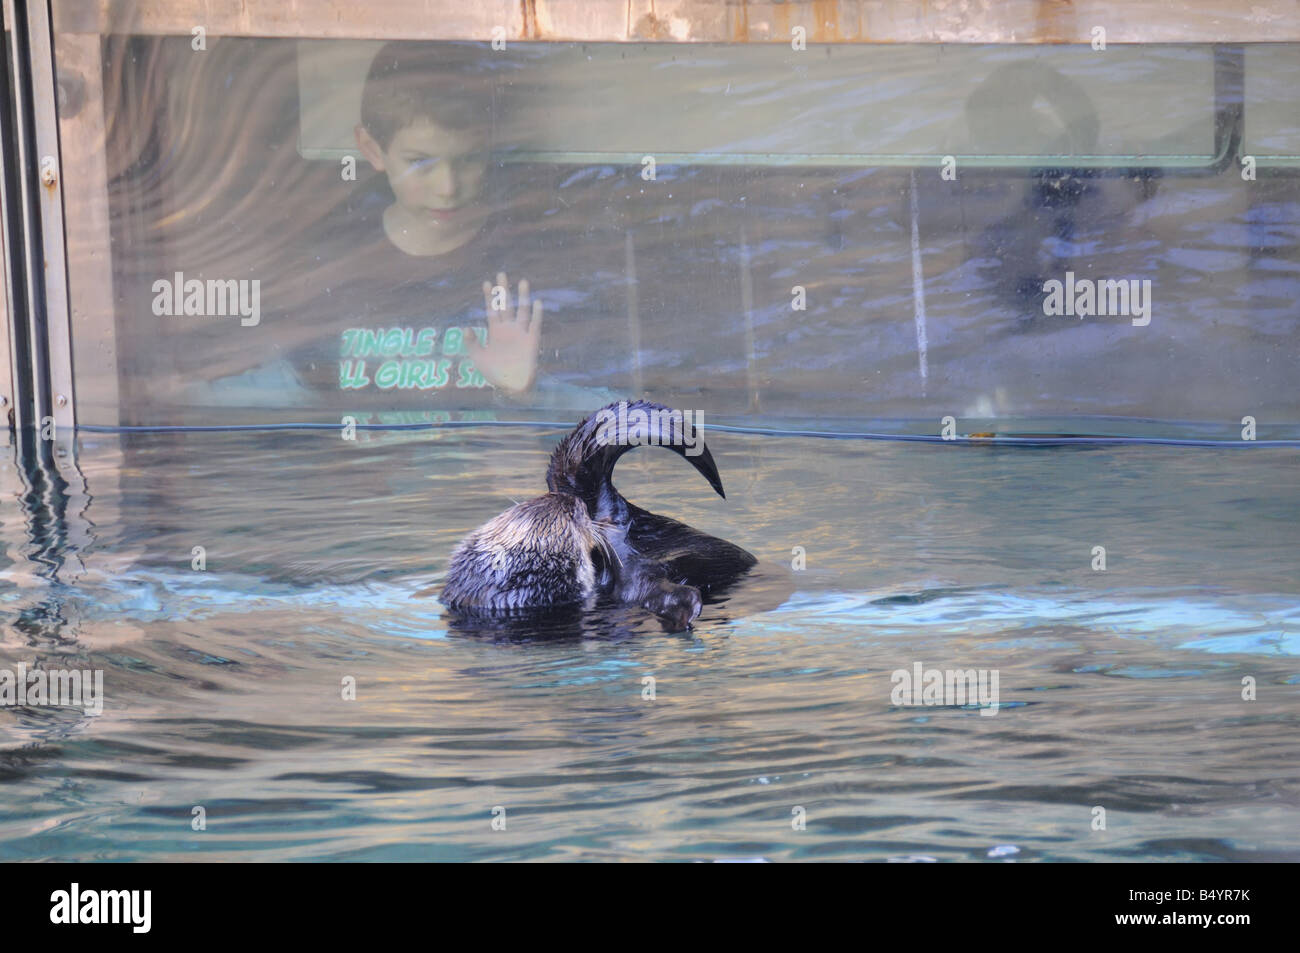 Child Watching Otter - Stock Image